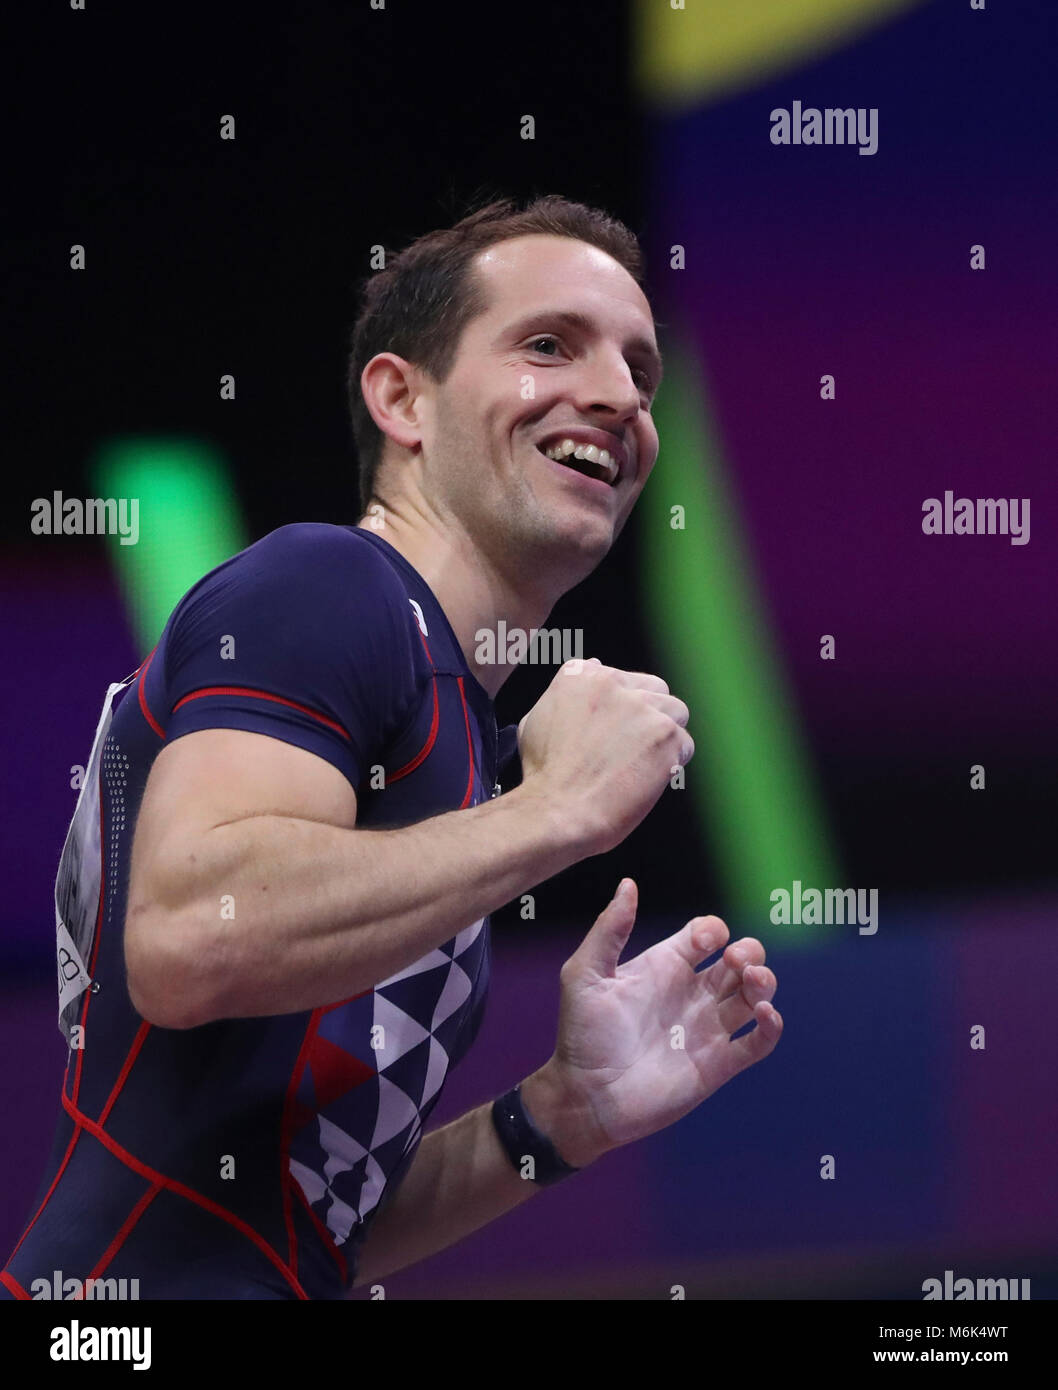 Birmingham. 4th Mar, 2018. Renaud Lavillenie of France reacts during the men's pole vault final of the IAAF - Stock Image